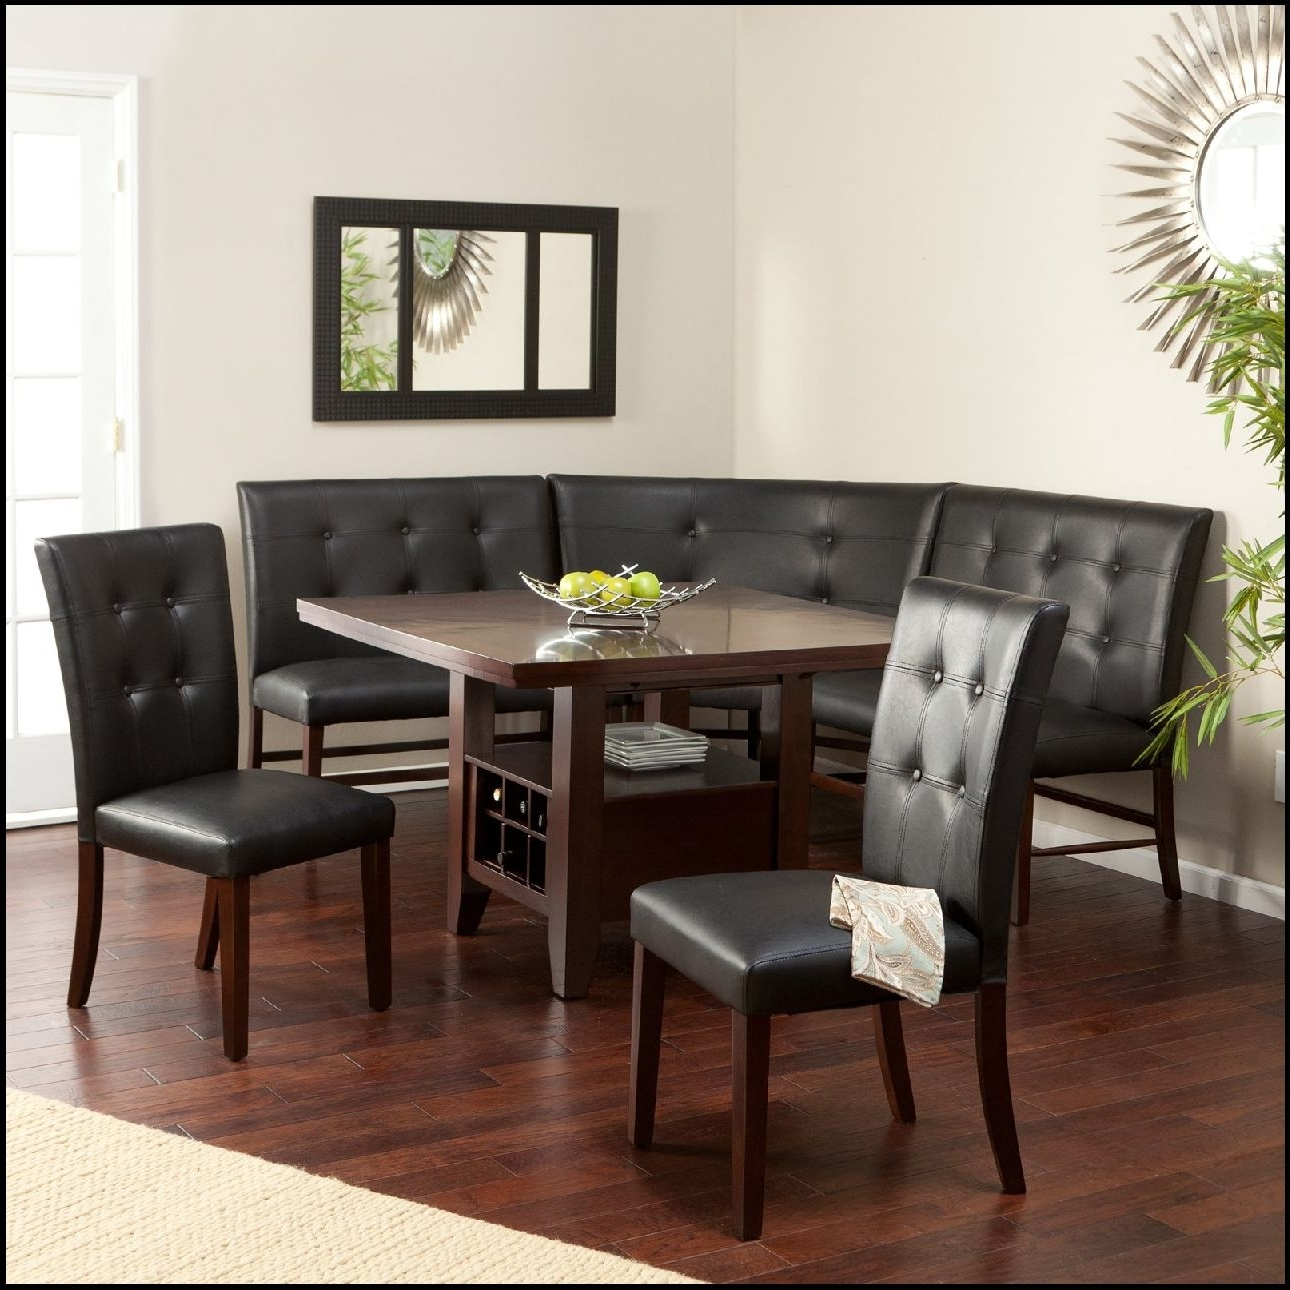 Palazzo 3 Piece Dining Table Sets Inside 2017 Modern Spectacular Marvelous Small Kitchen Dining Table Sets  (View 13 of 25)